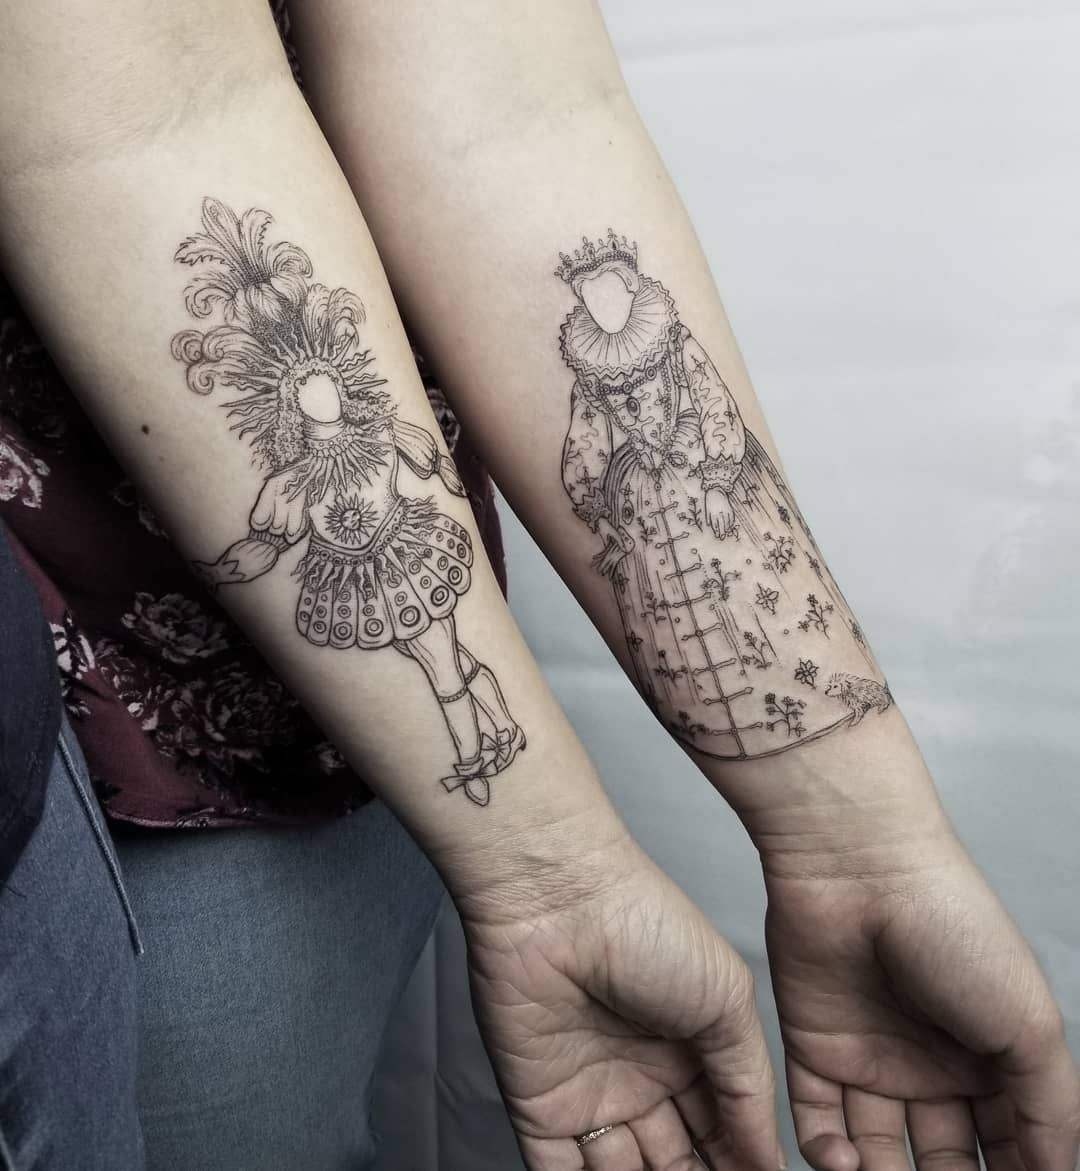 Getting matching ink